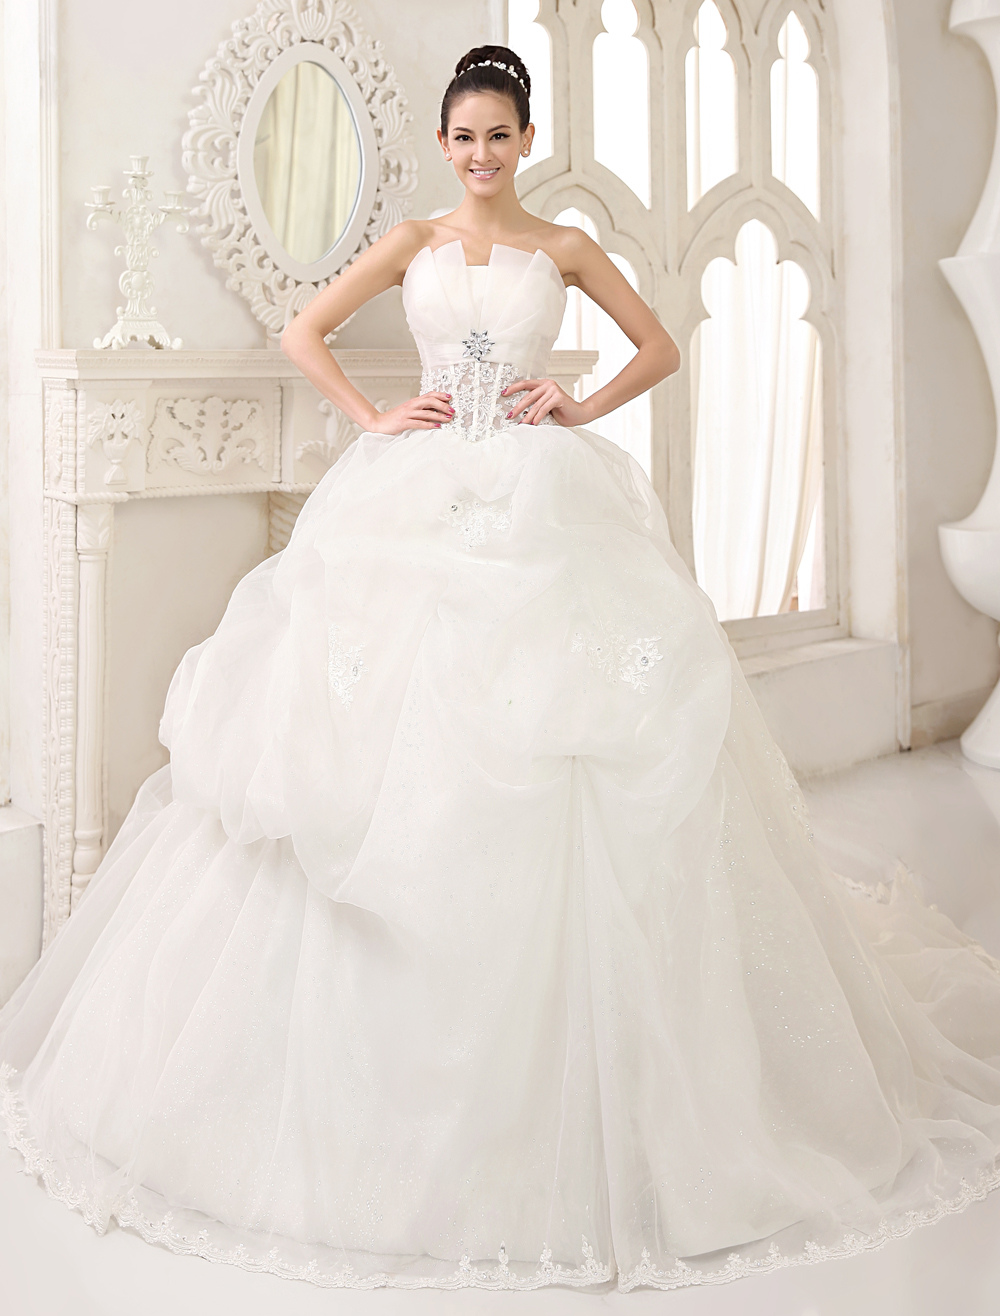 Buy Ivory Ball Gown Scalloped-Edge Neck Strapless Applique Chapel Train Organza Brides Wedding Dress Milanoo for $212.49 in Milanoo store